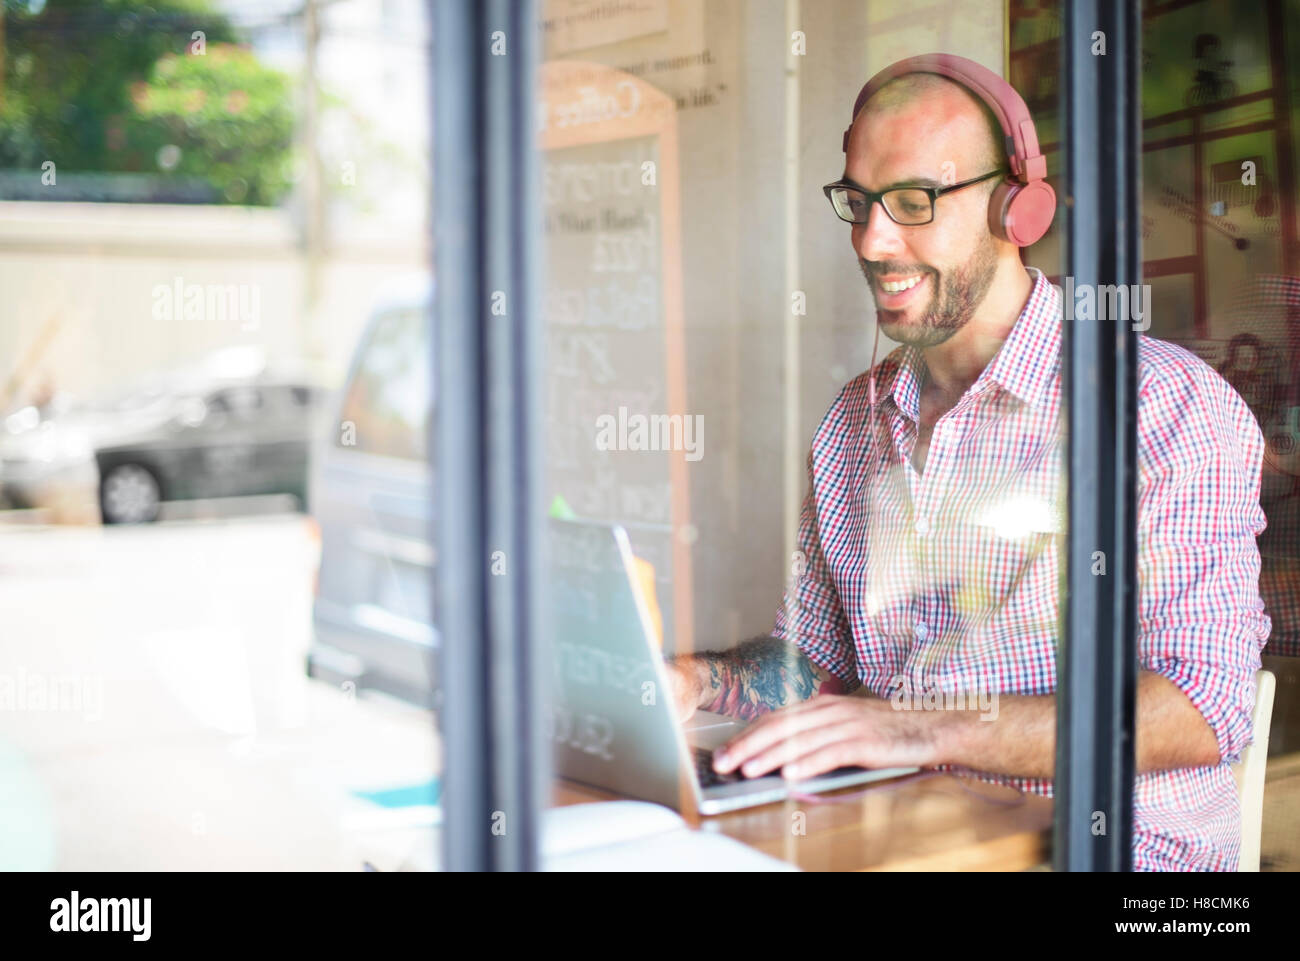 Music Song Listening Playlist Digital Man Concept - Stock Image